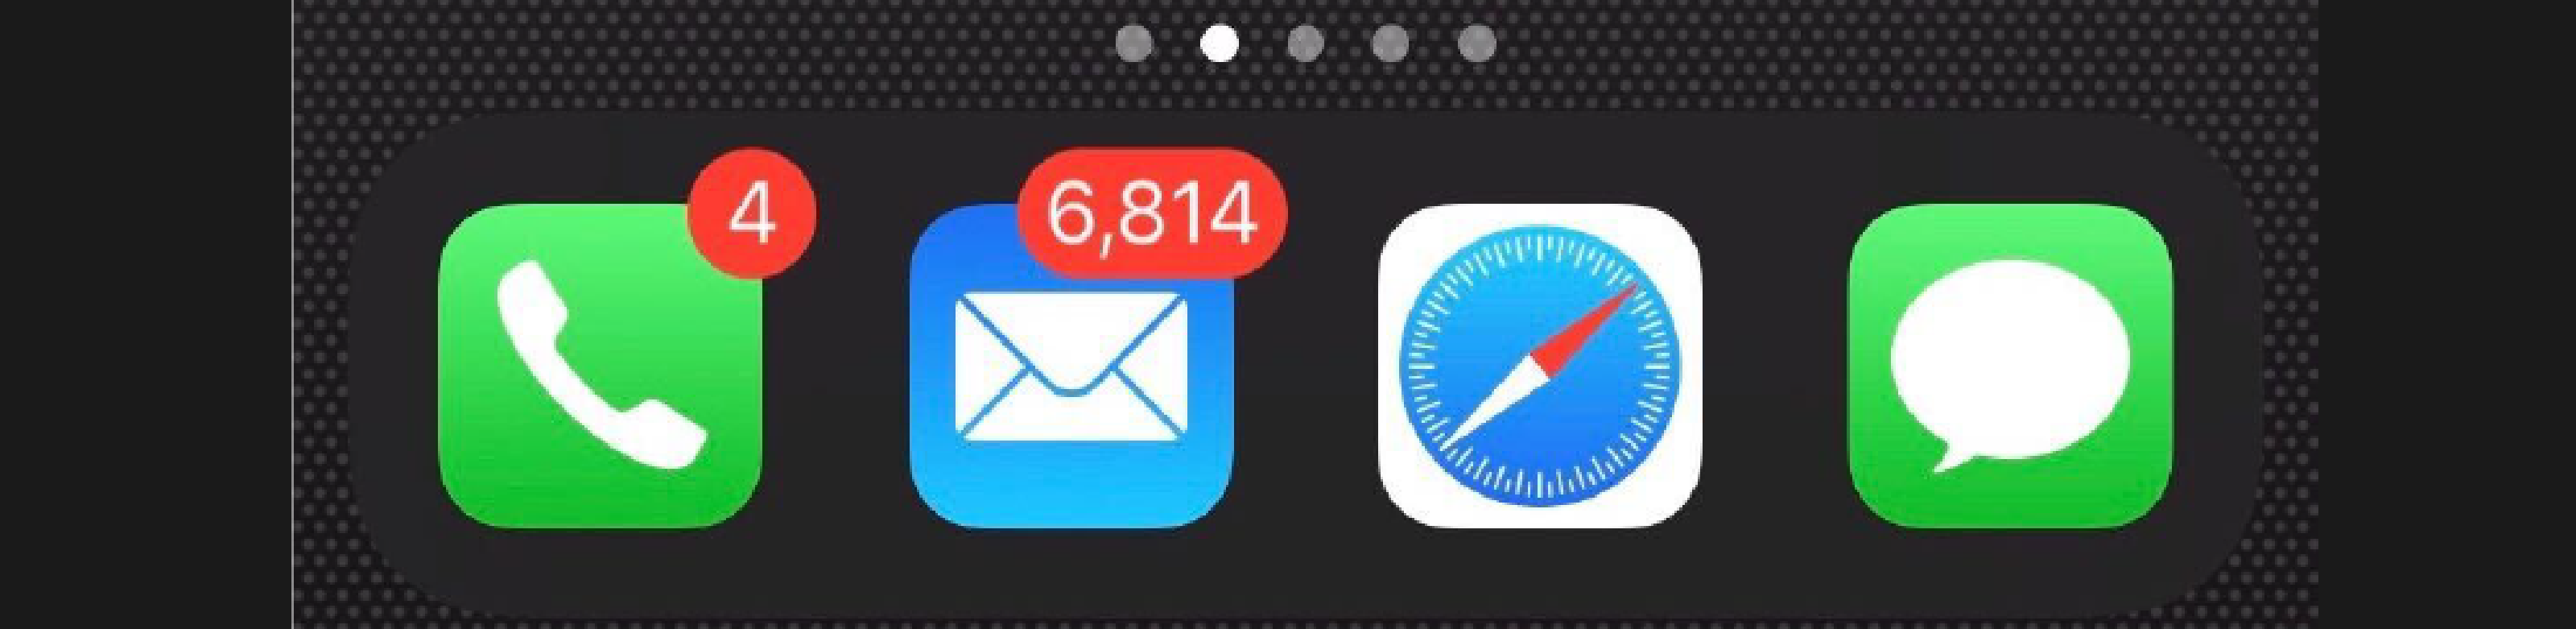 crowded email inbox